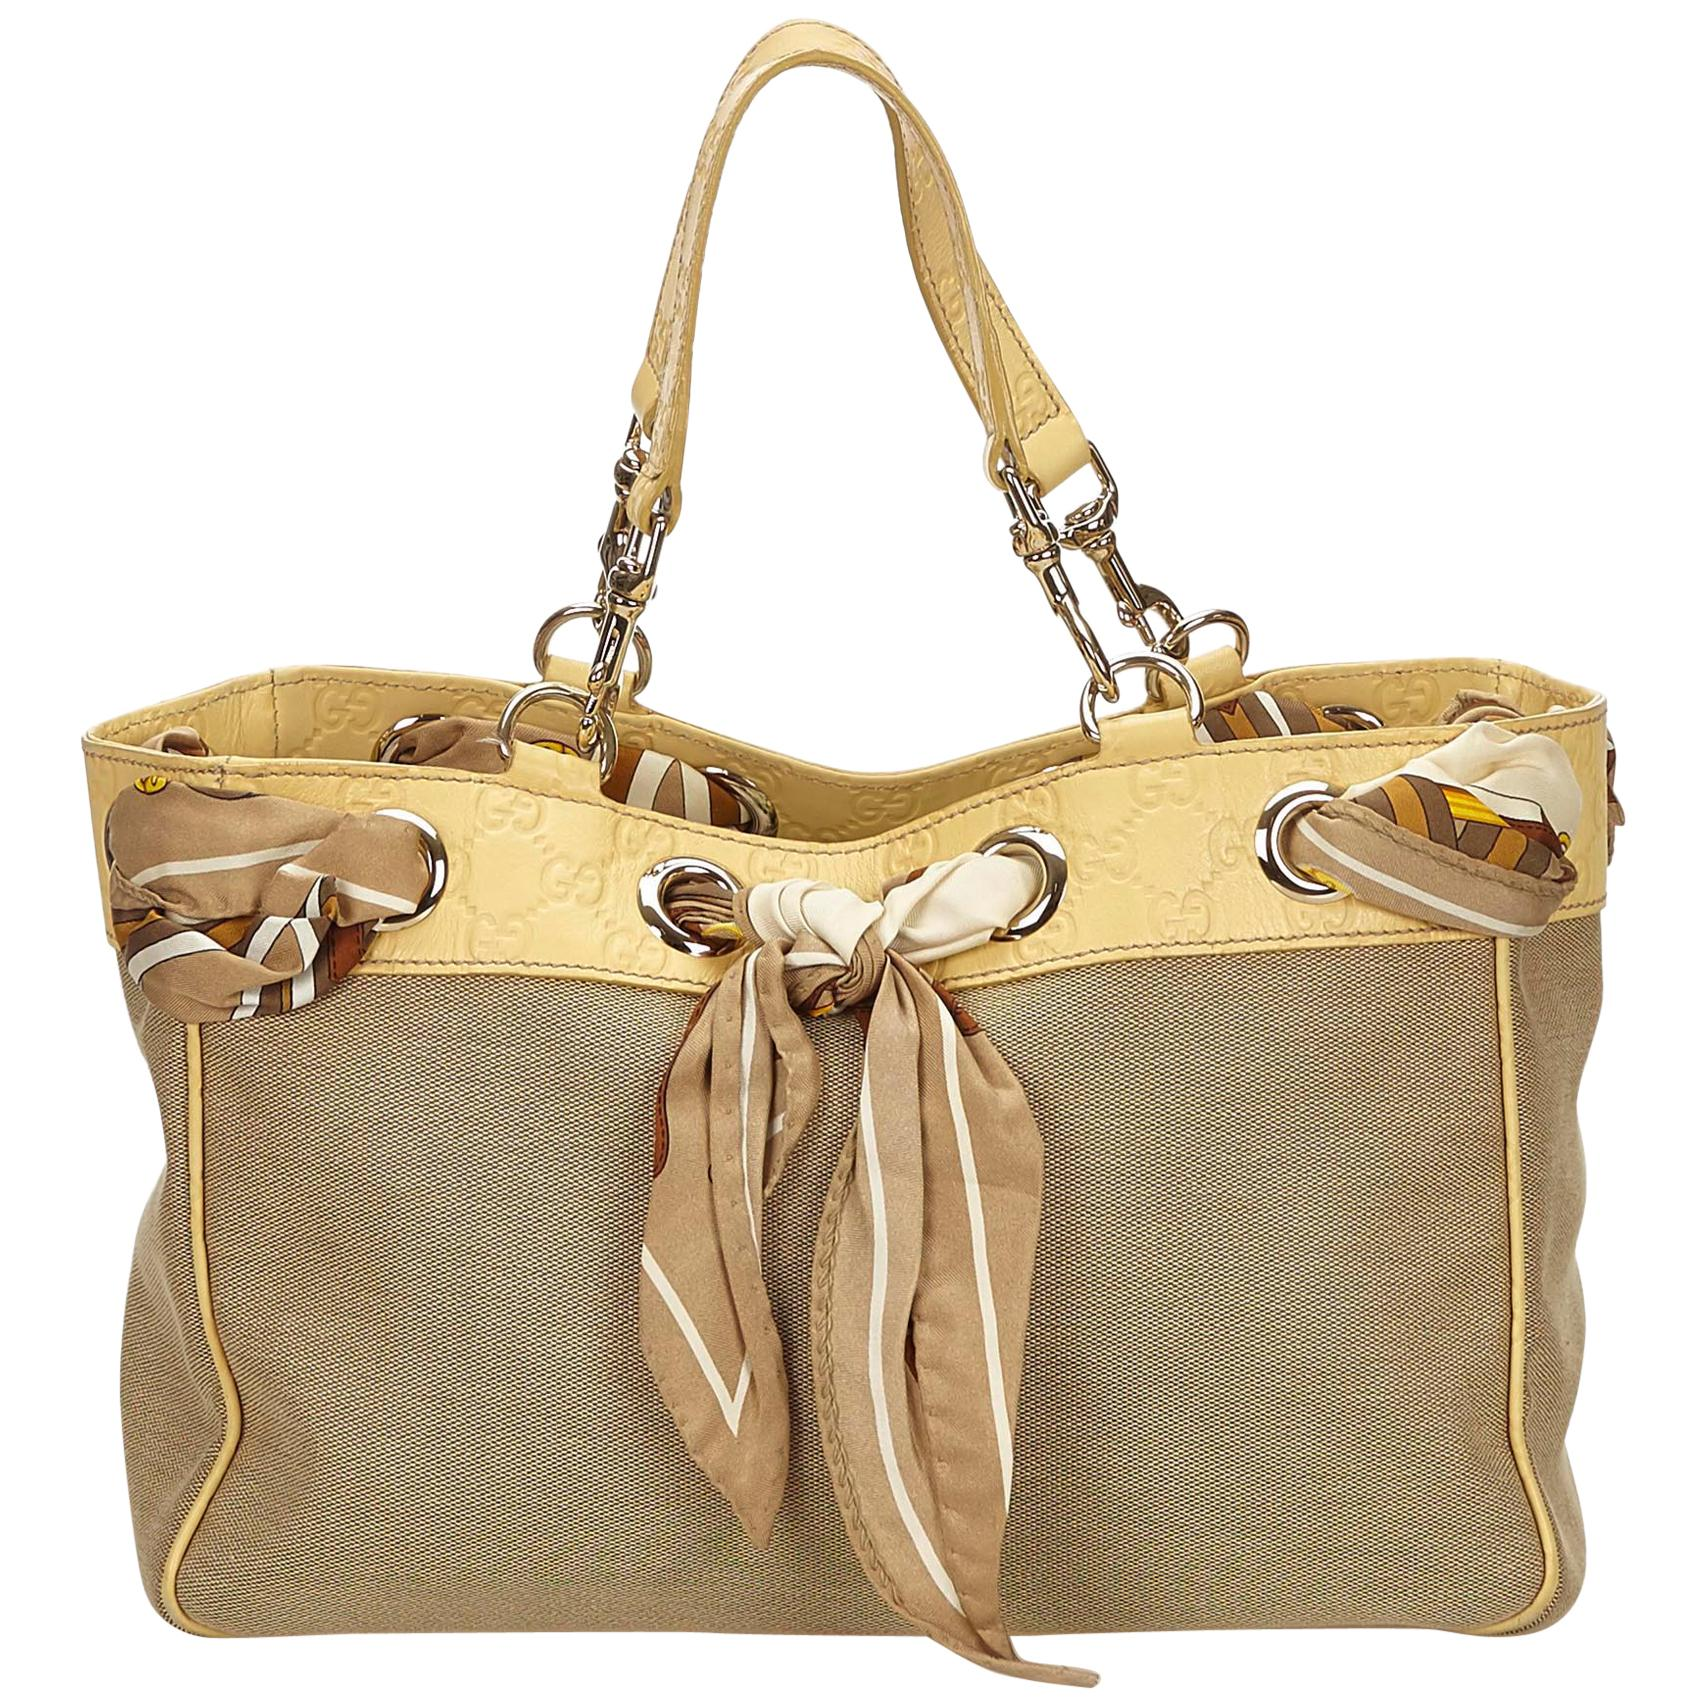 0a7a04440ea Silk Tote Bags - 25 For Sale on 1stdibs